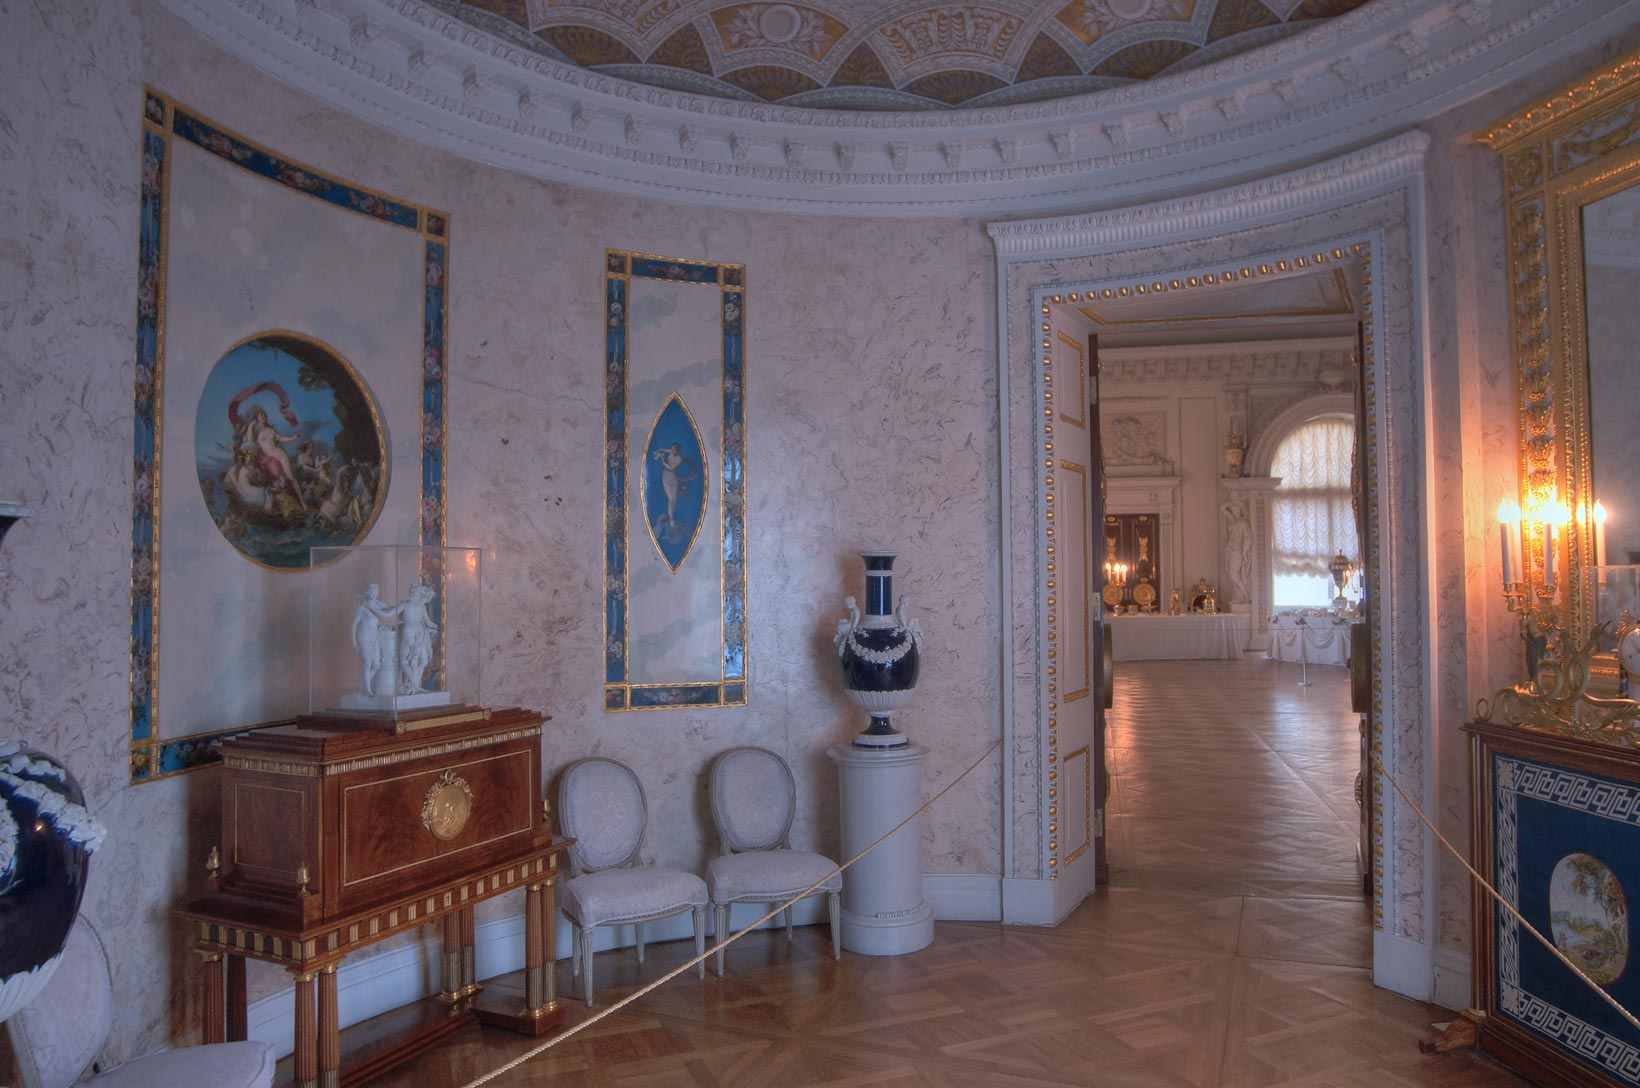 Round room in Pavlovsky Palace. Pavlovsk, a suburb of St.Petersburg, Russia